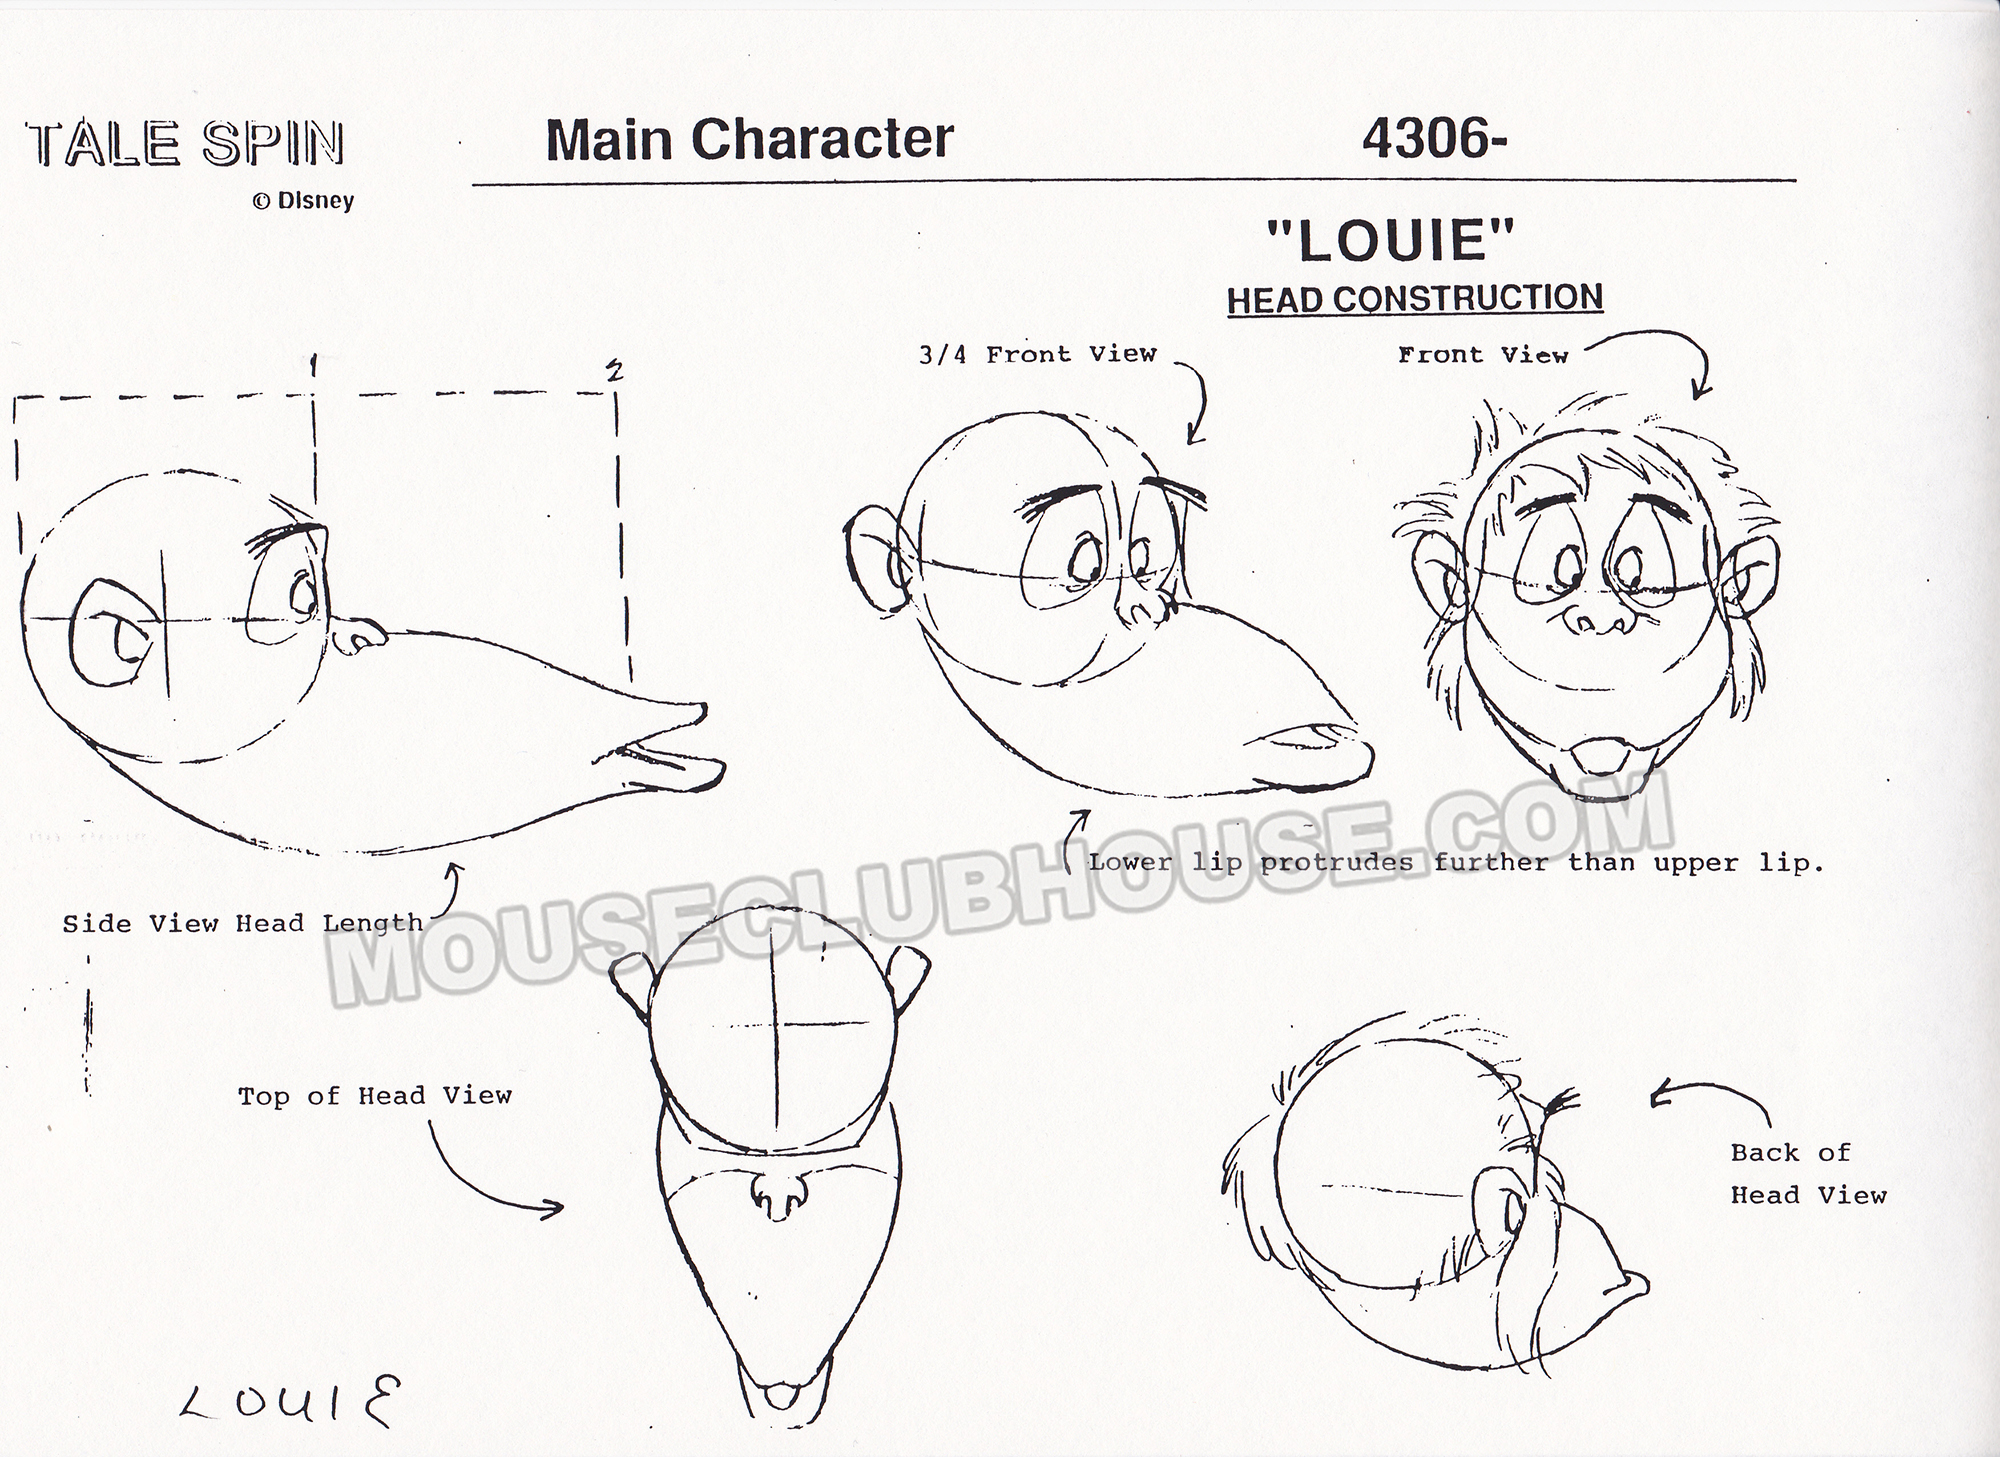 Head construction of Louie